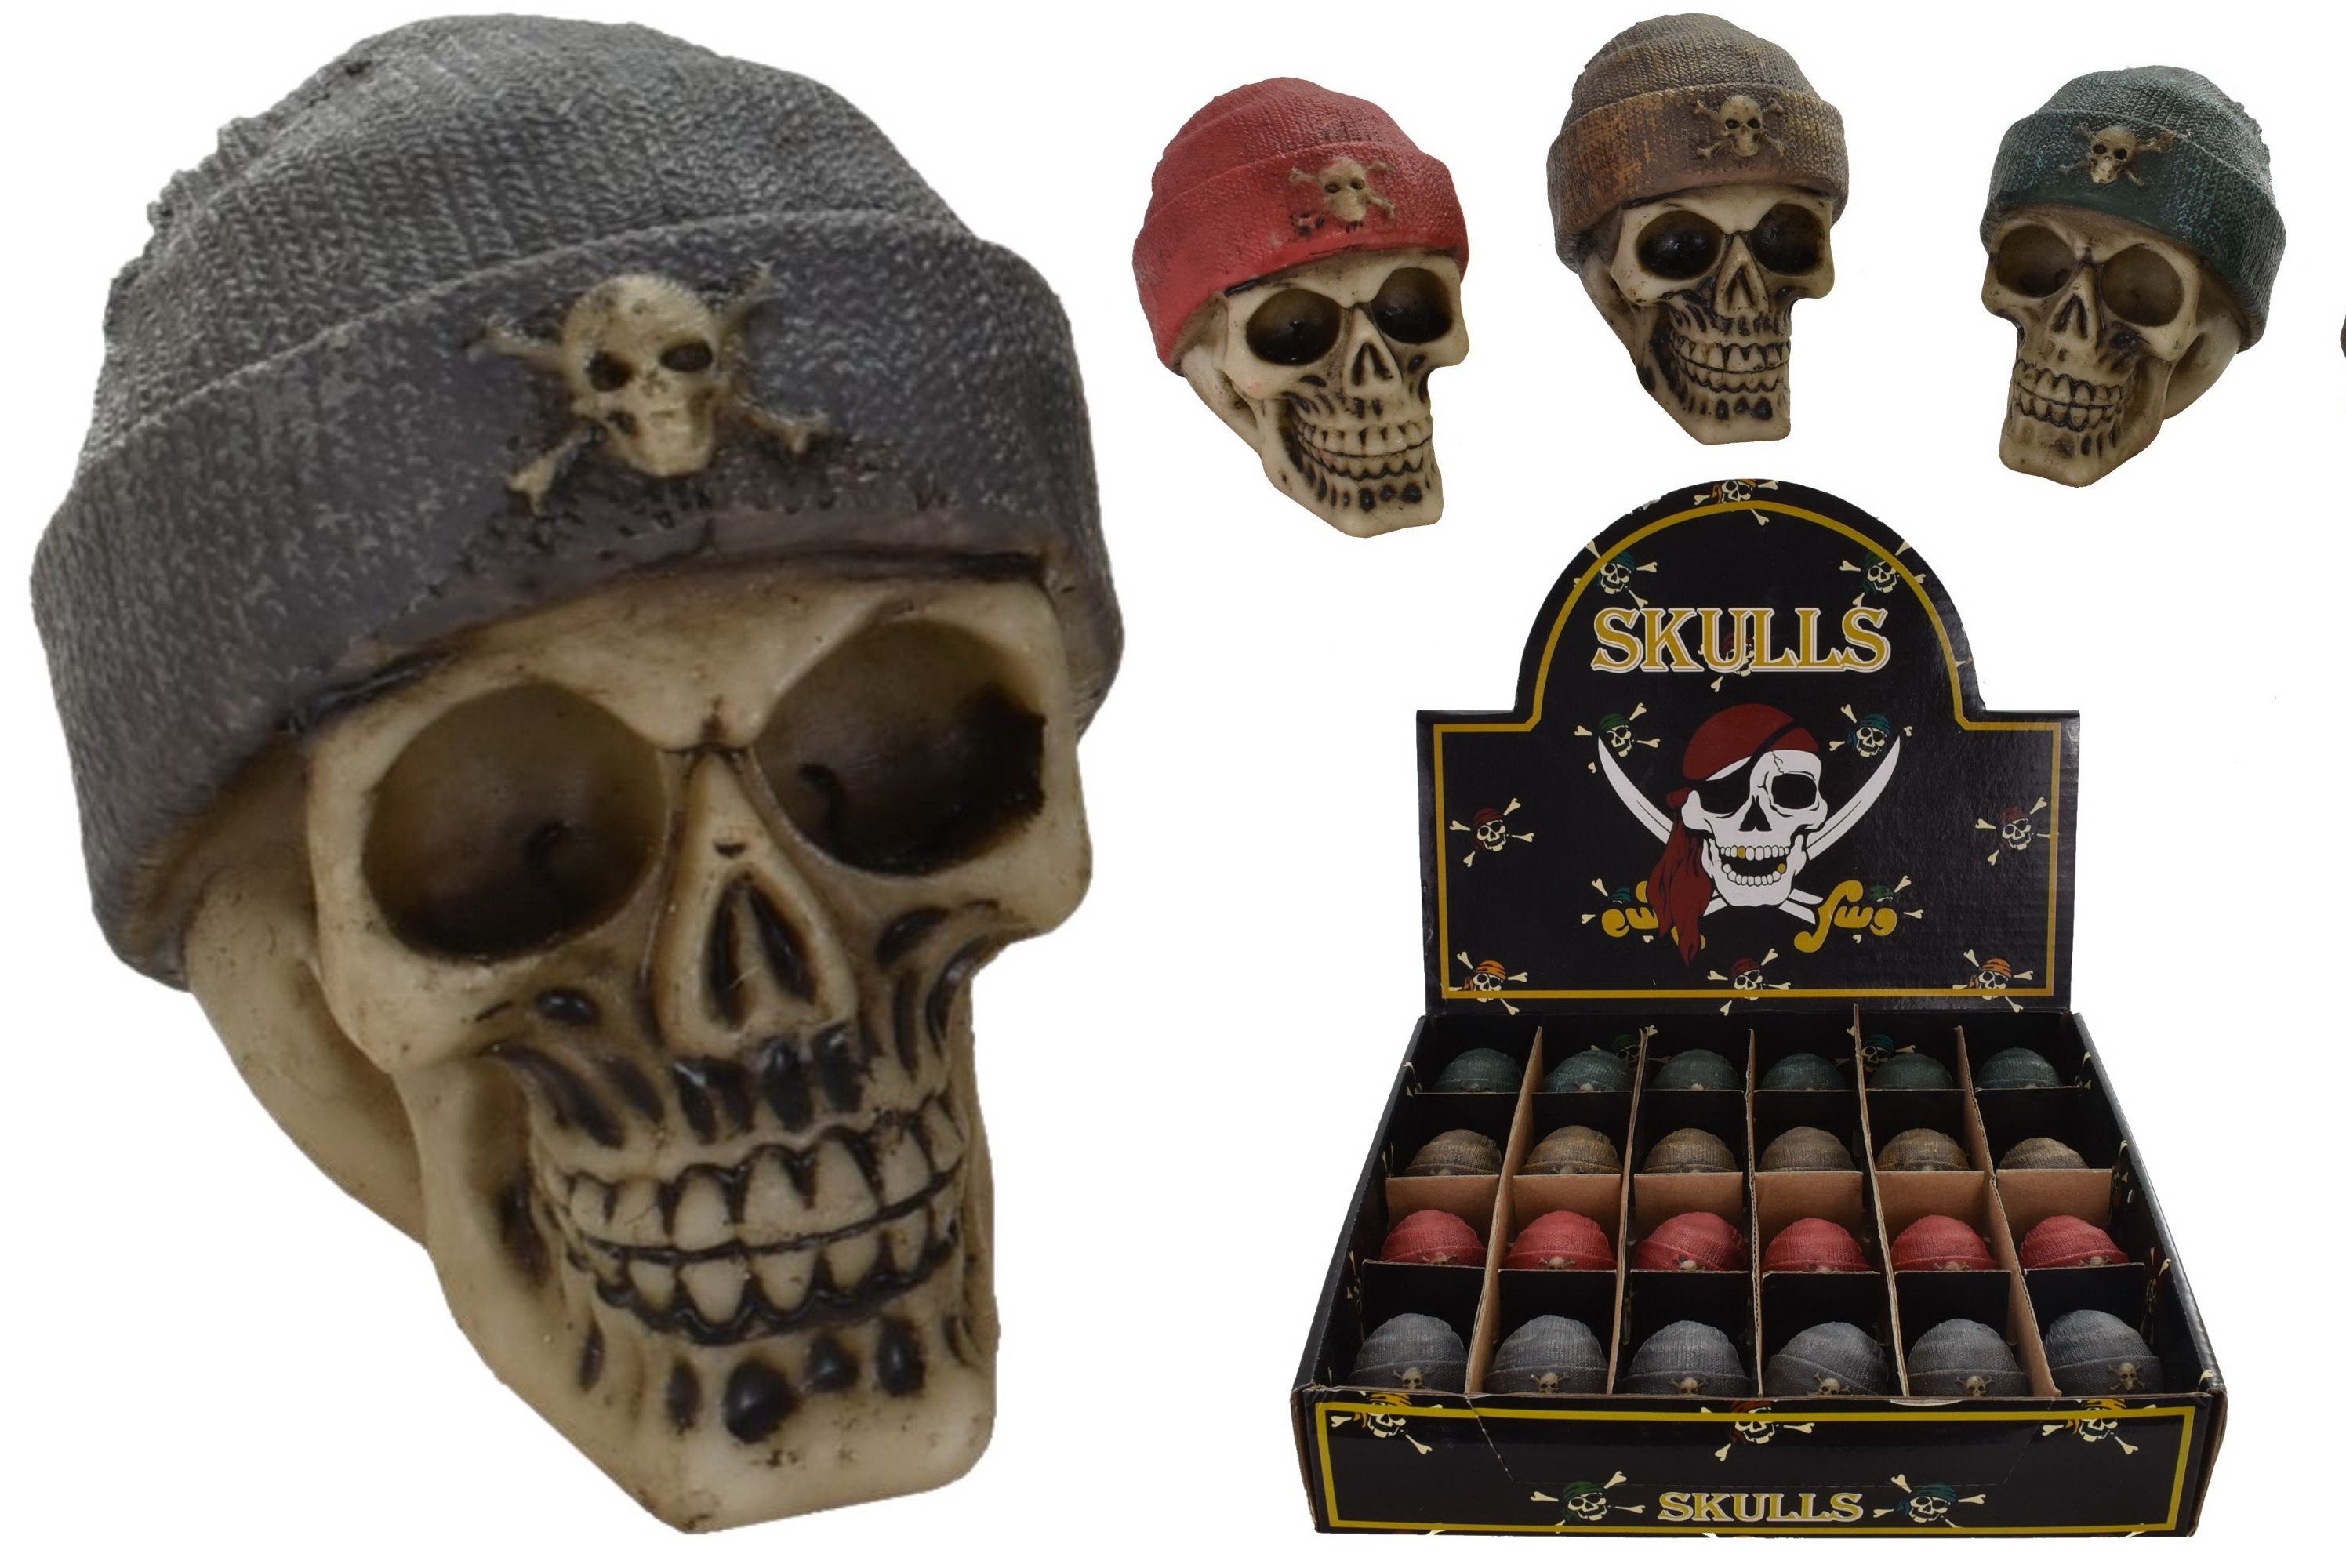 Resin Skull With Beannie Hat 5cm (4 Asst) In Display Bx